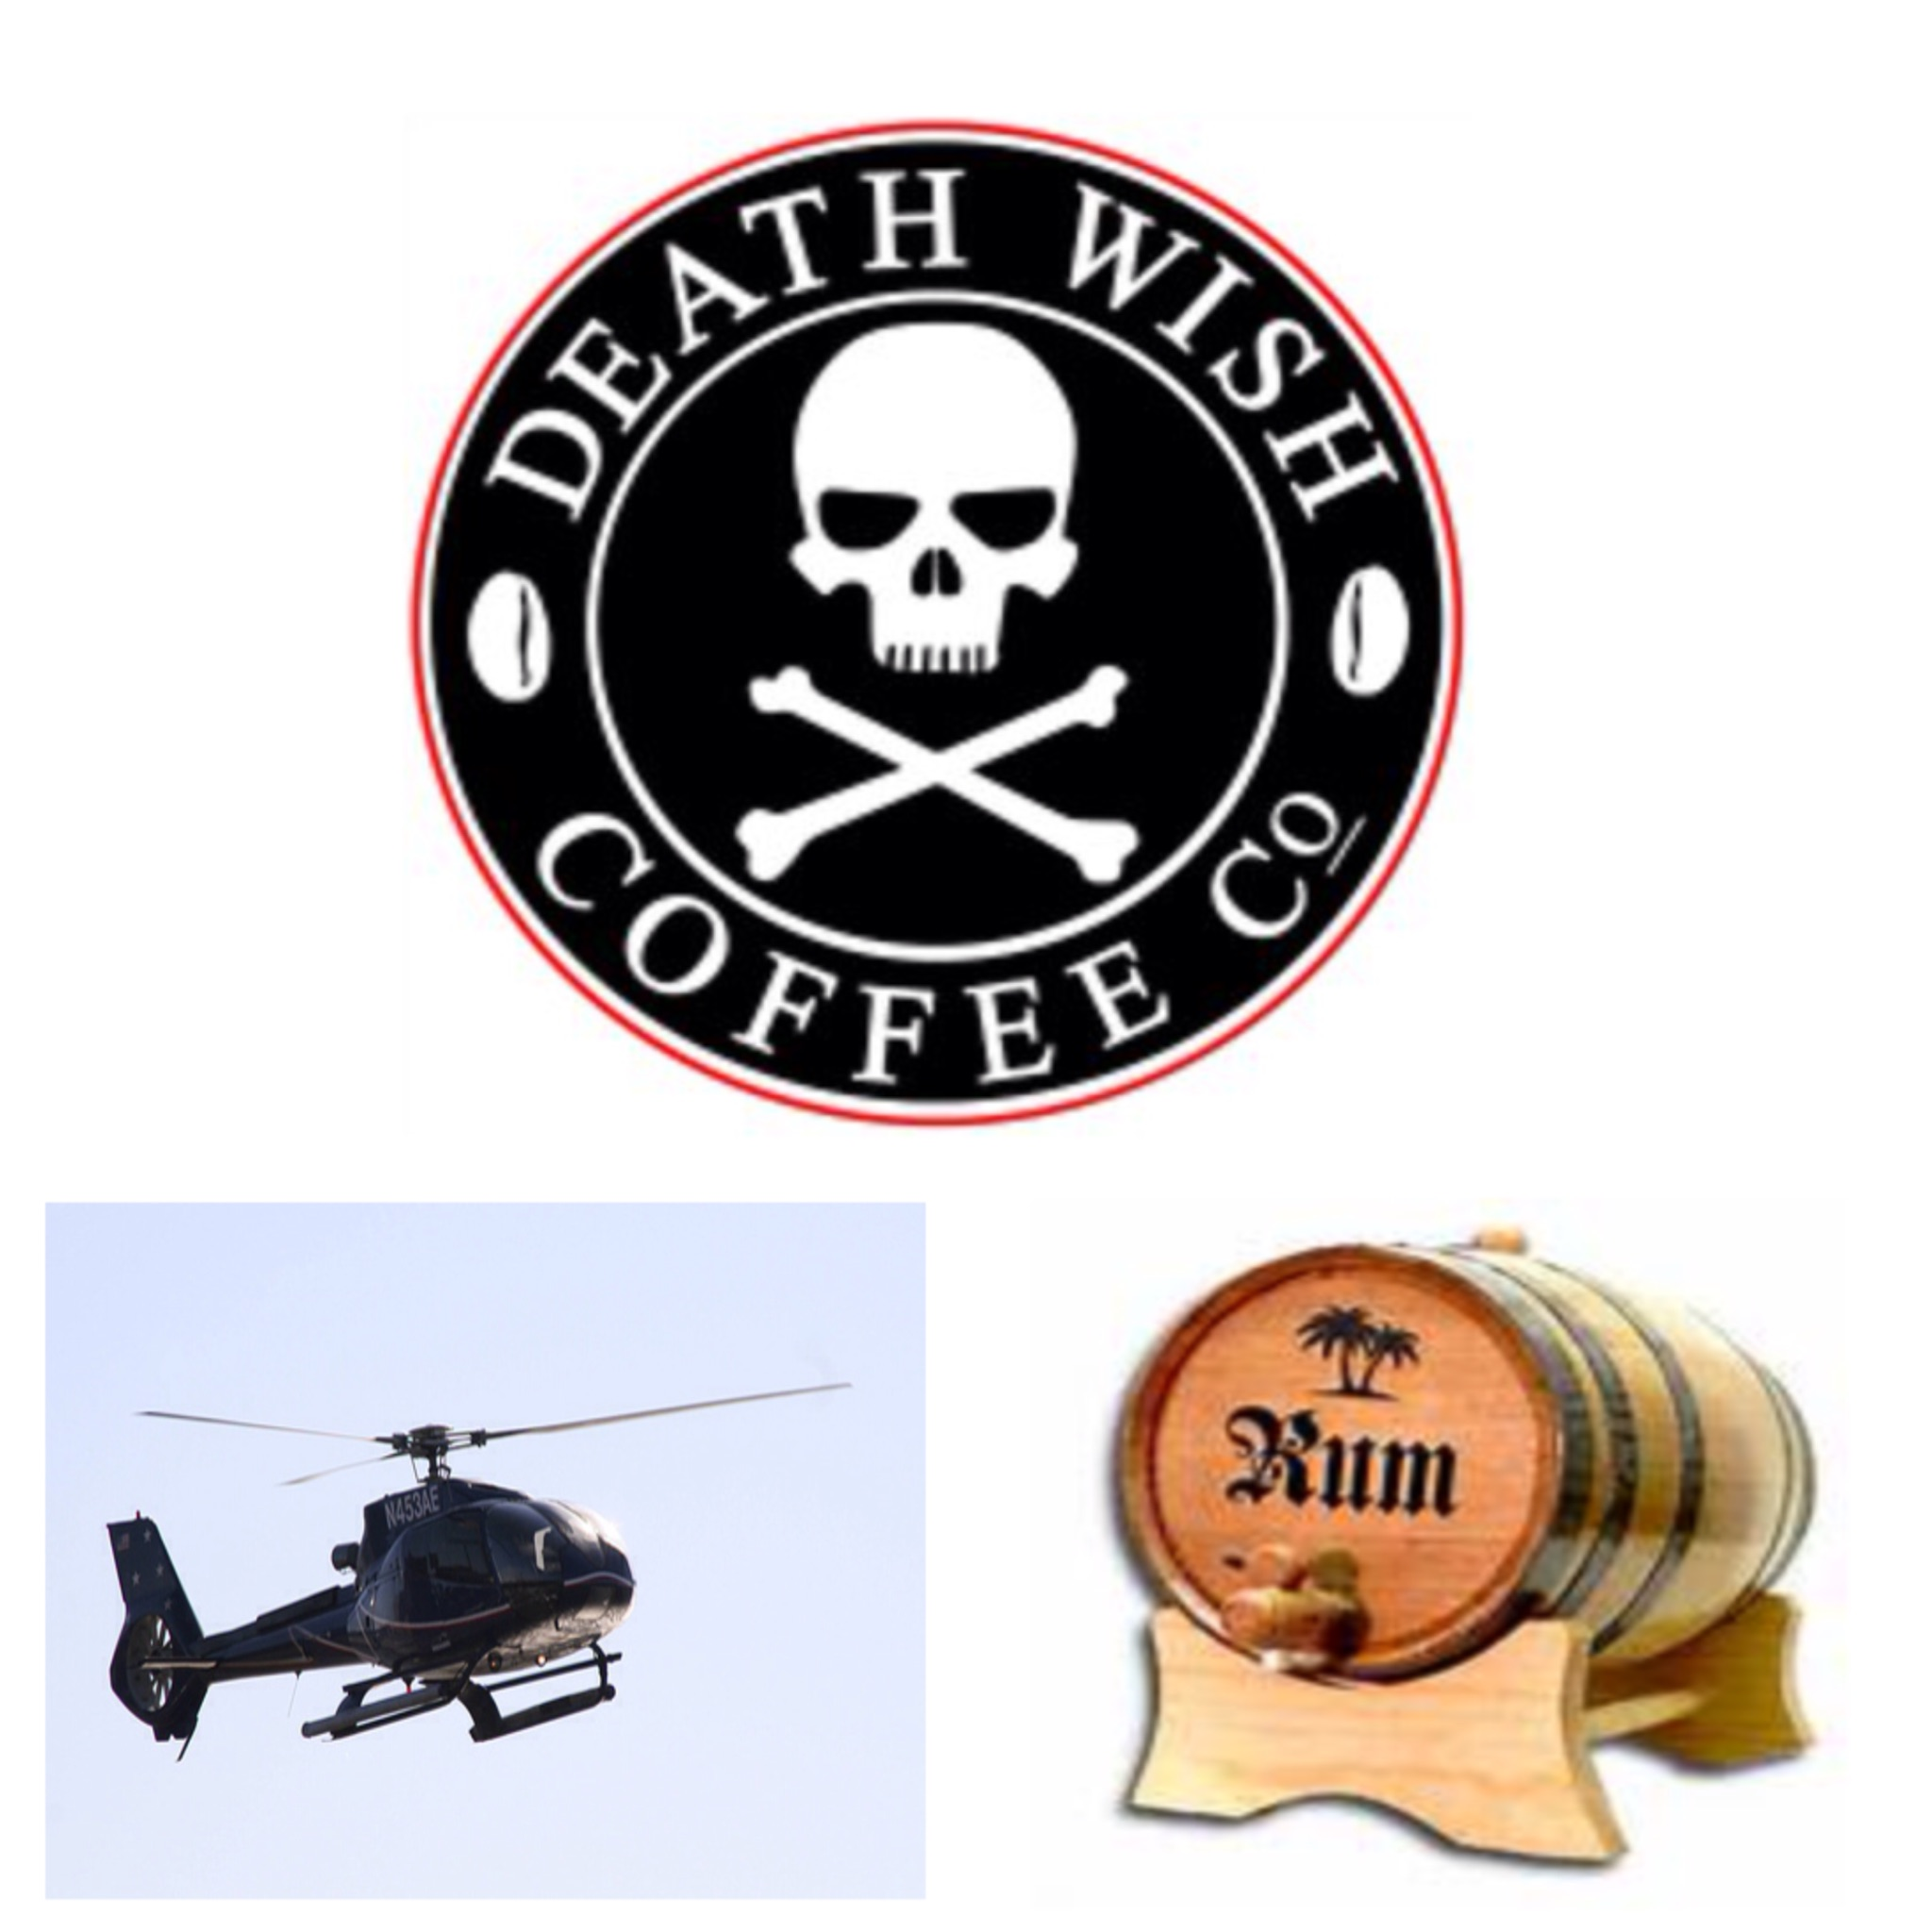 Geek Cast Live Ep042: Death Wish Coffee! Rocket Fuel For Your Face